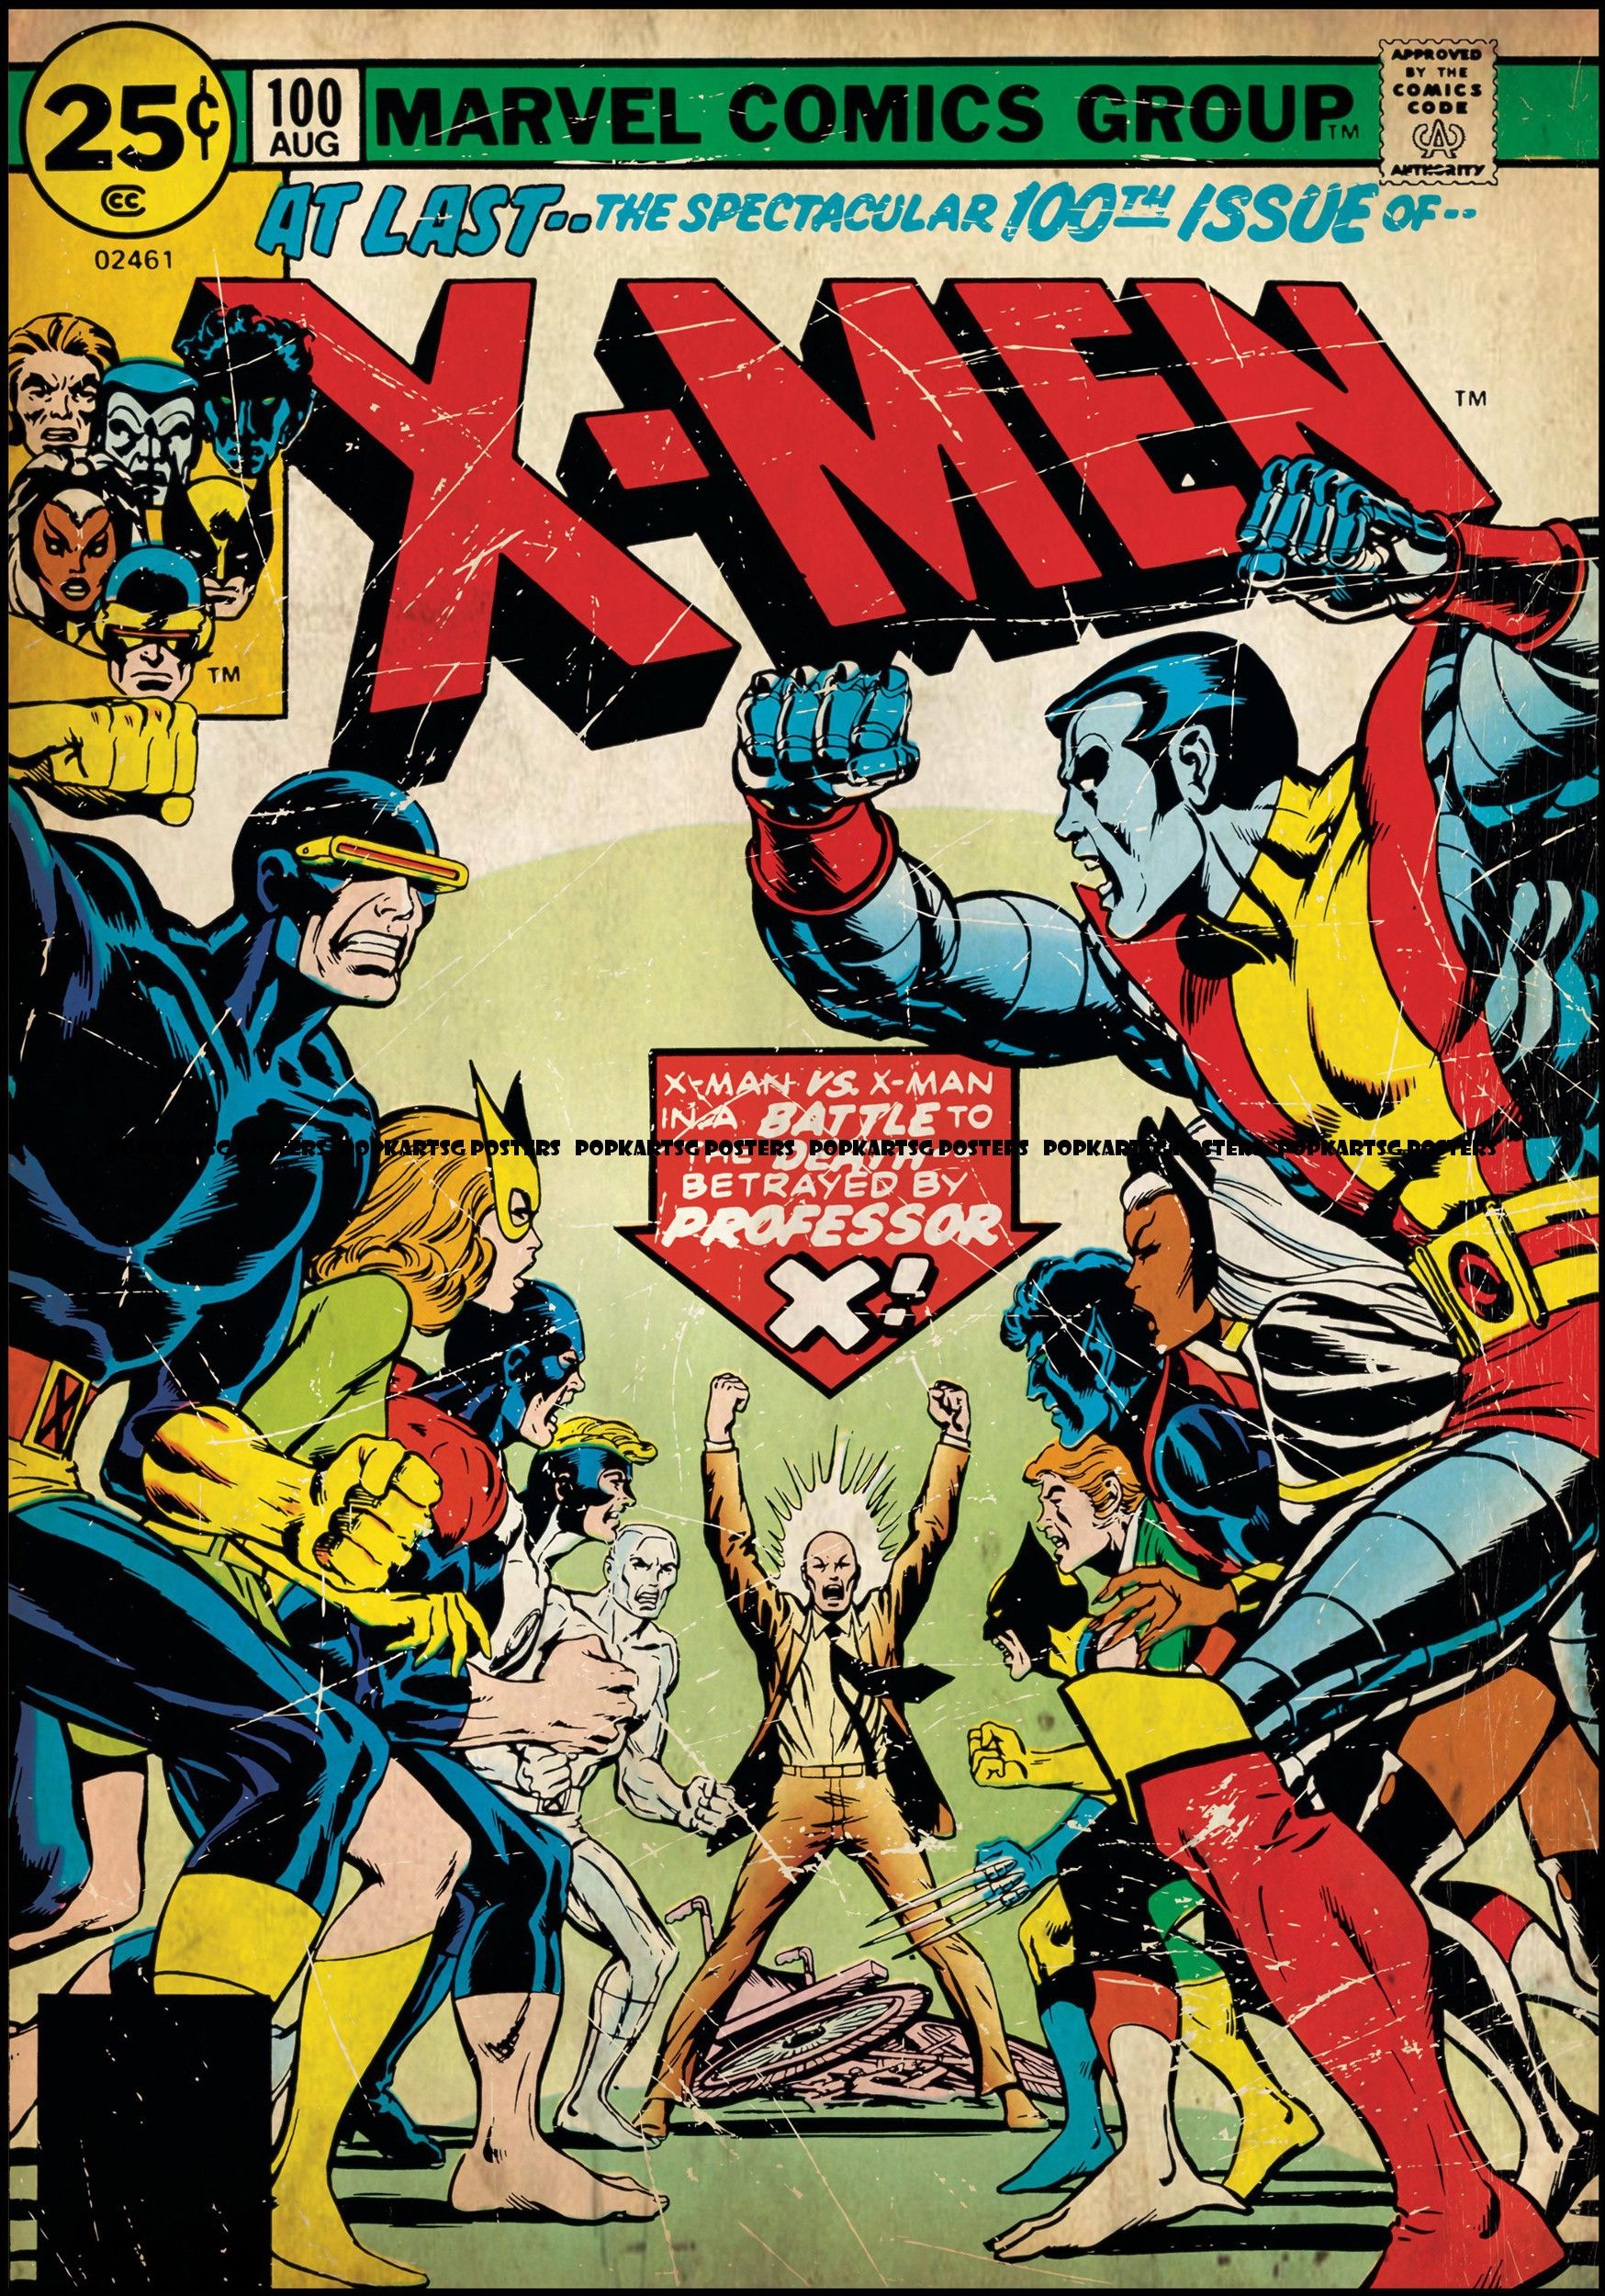 Classic comic cover art xmen the spectacular 100th issue